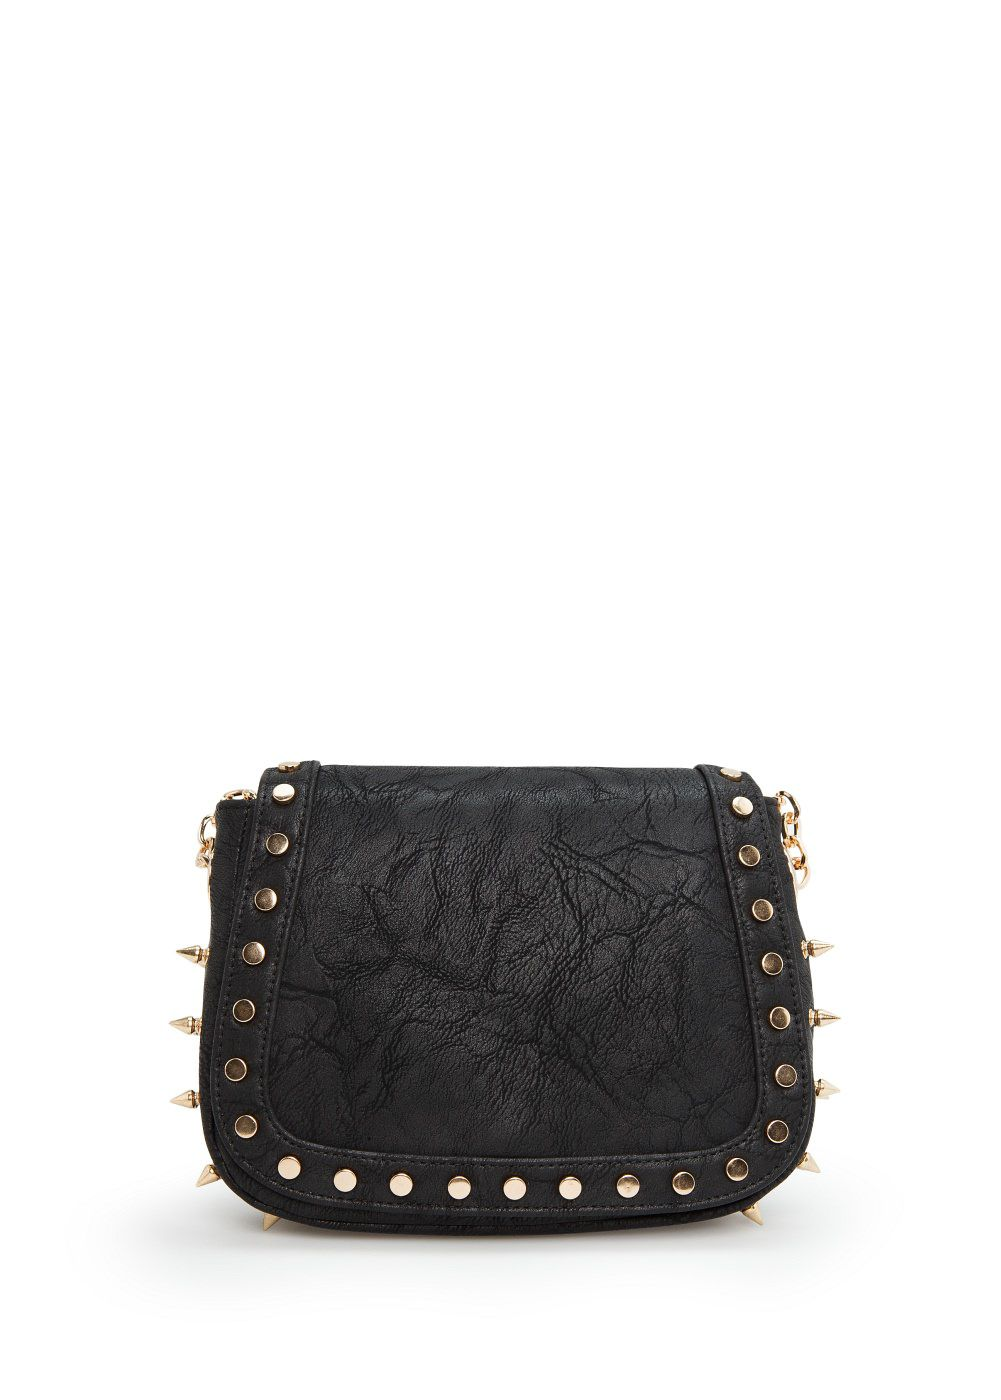 Punk cross body bag